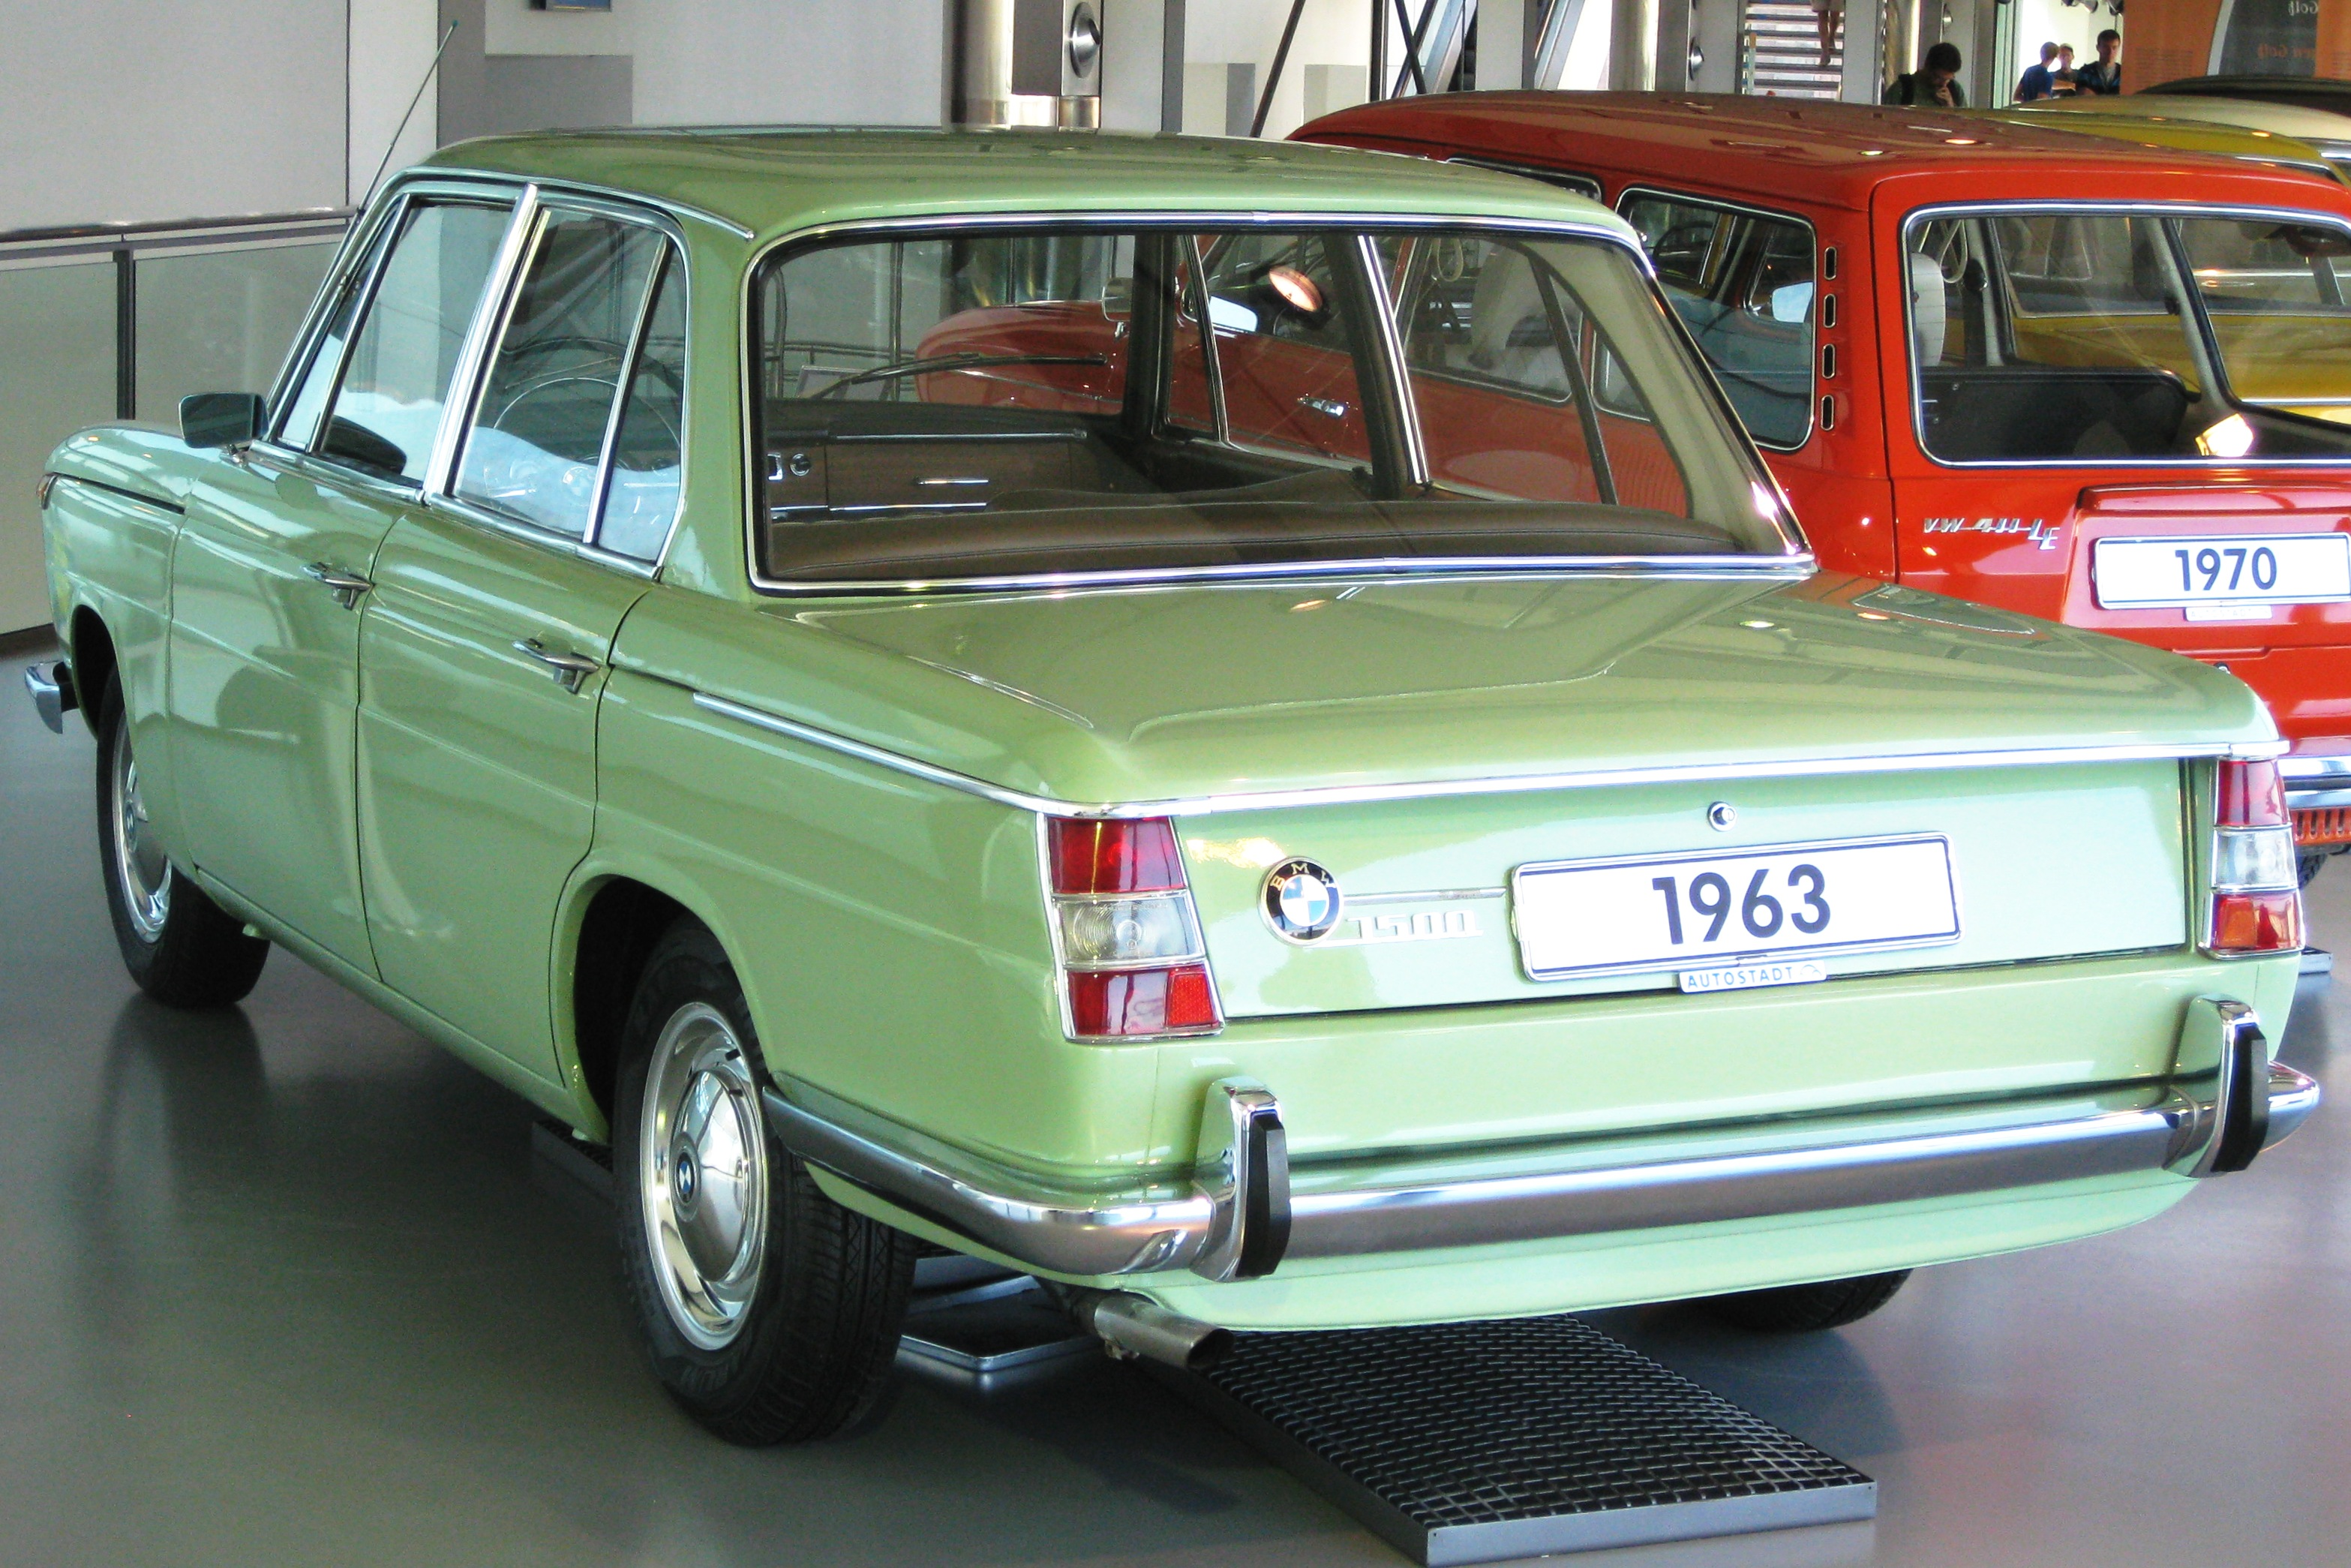 BMW_1500_sedan_at_Volkswagen_Autostadt_in_Wolfsburg